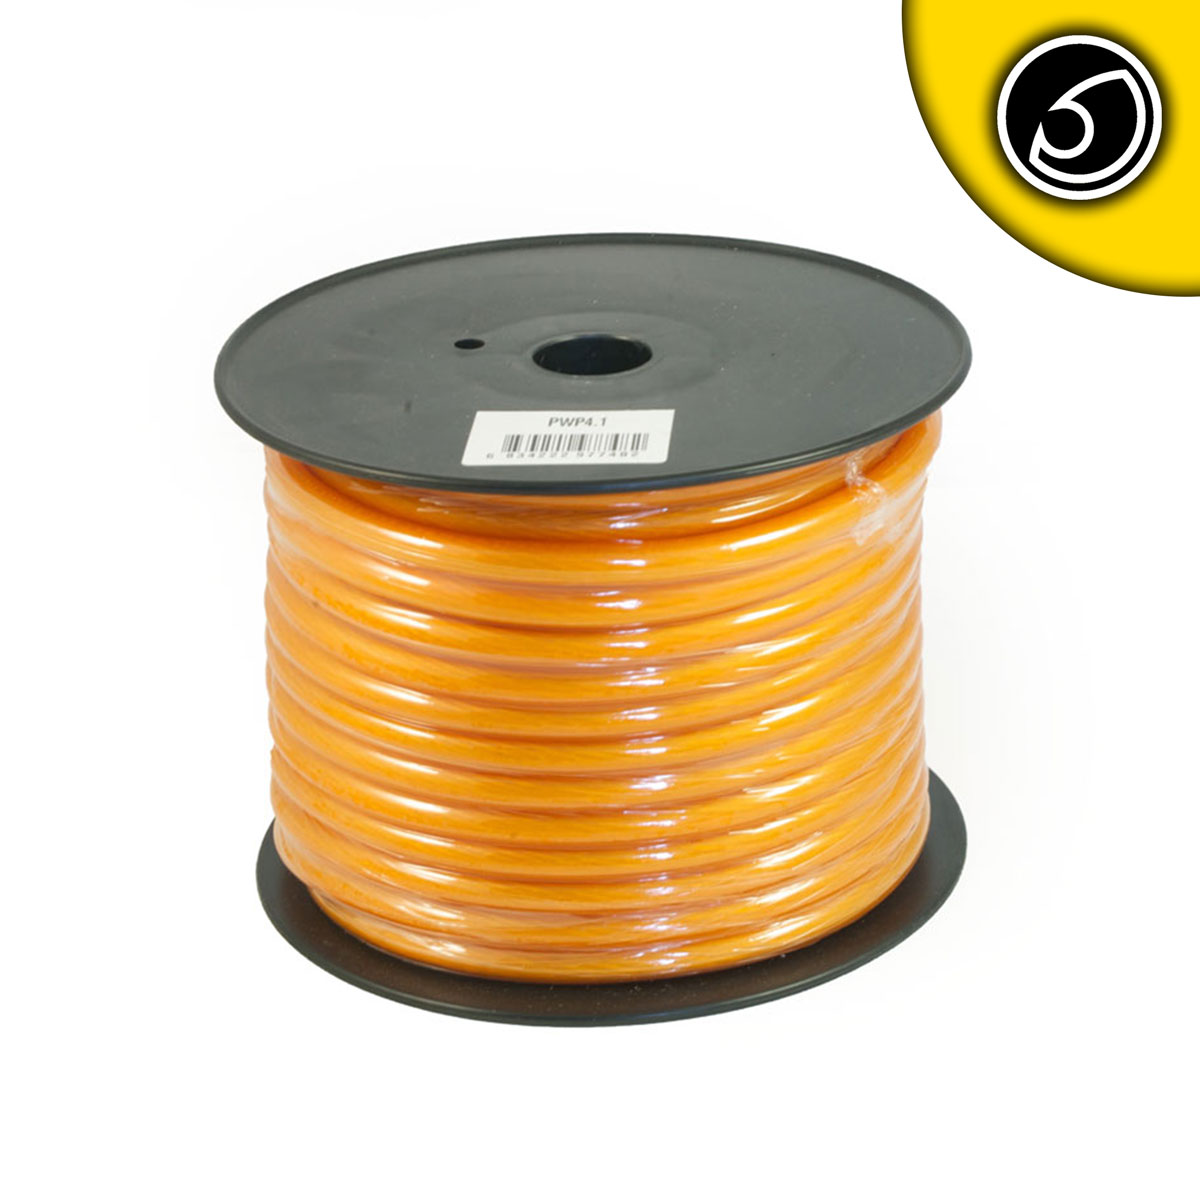 Bassface PWP4.1 30m Roll CCA 4AWG 21mm Orange Power Cable 1862 Strand